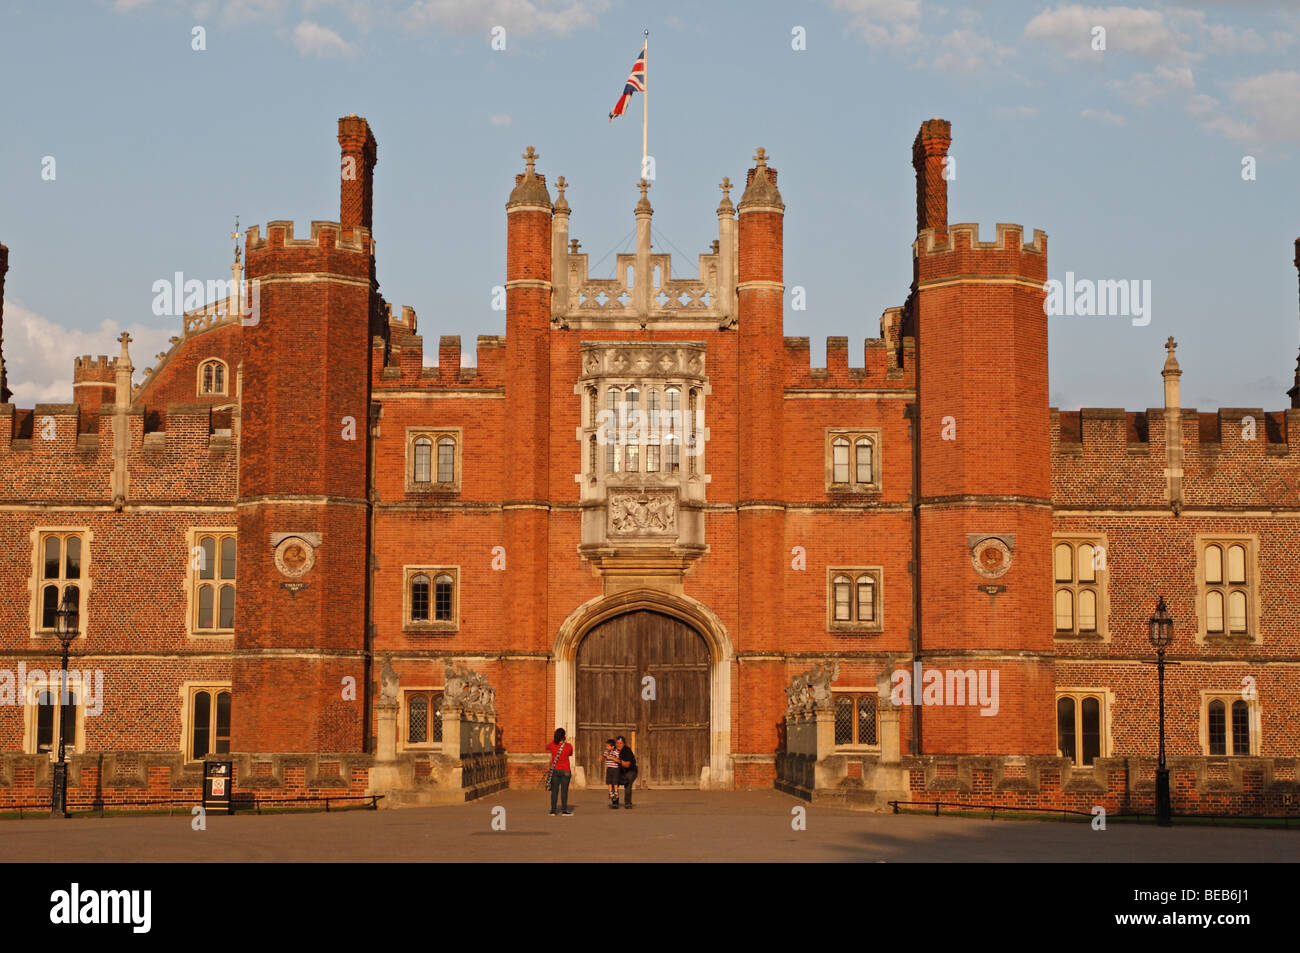 A mother photographs her family in front of the main entrance to Hampton Court Palace, Surrey, UK on a lovely summer's - Stock Image